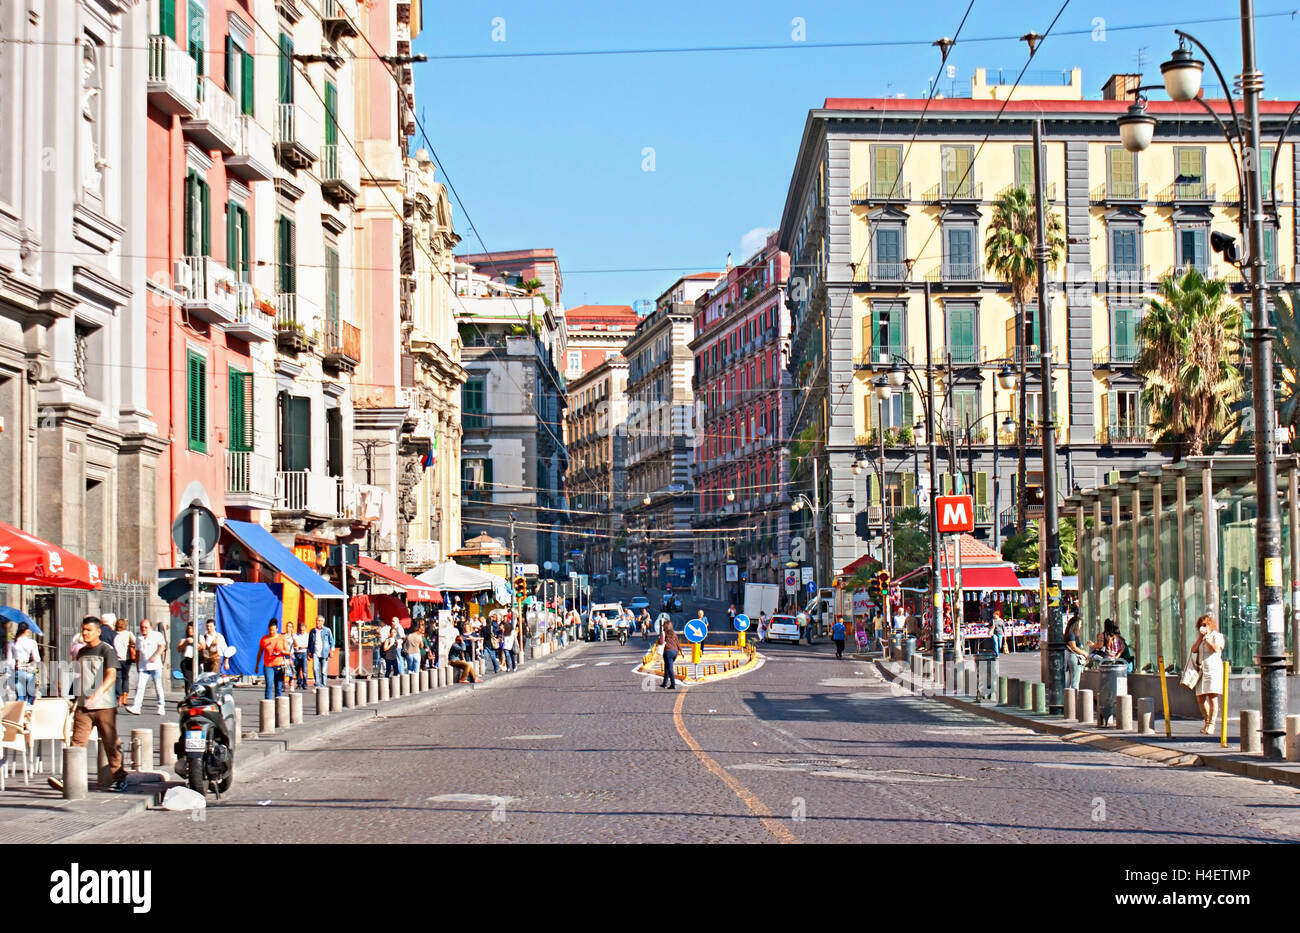 The medieval tourist Via Toledo with many street cafes and shops is very popular for promenades and shopping, Naples - Stock Image